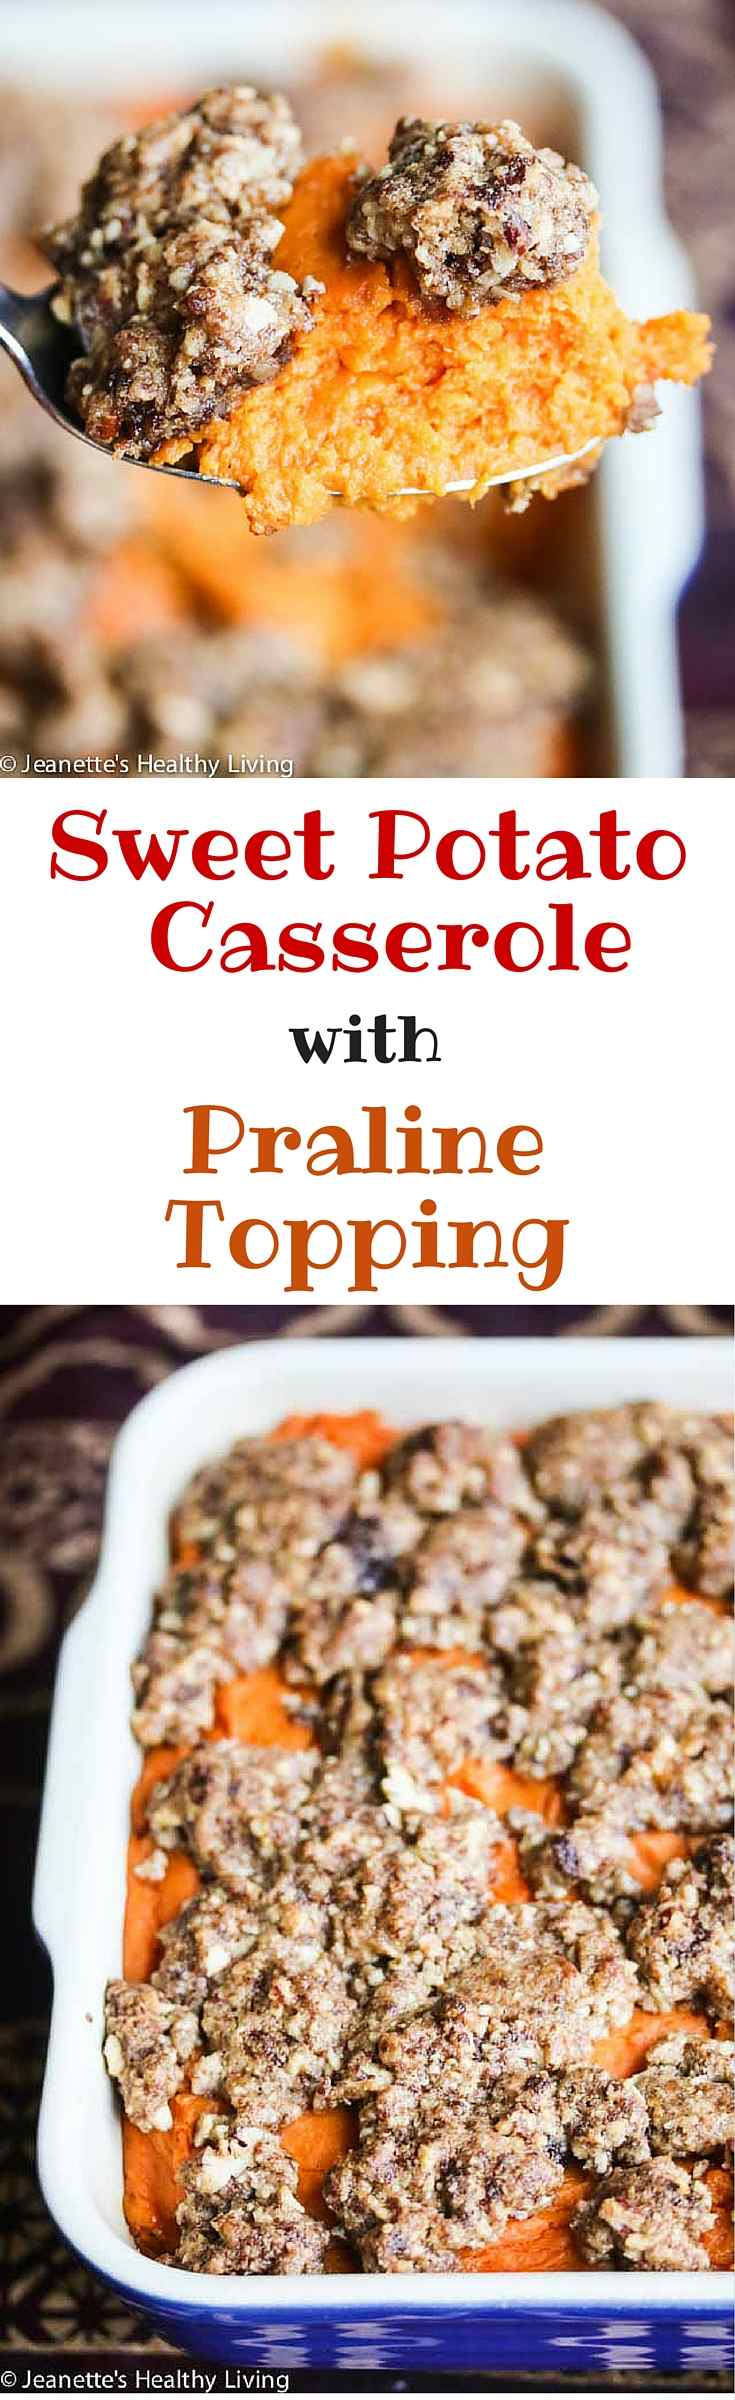 Sweet Potato Casserole with Praline Topping - a special sweet potato casserole for Thanksgiving and the holiday season.